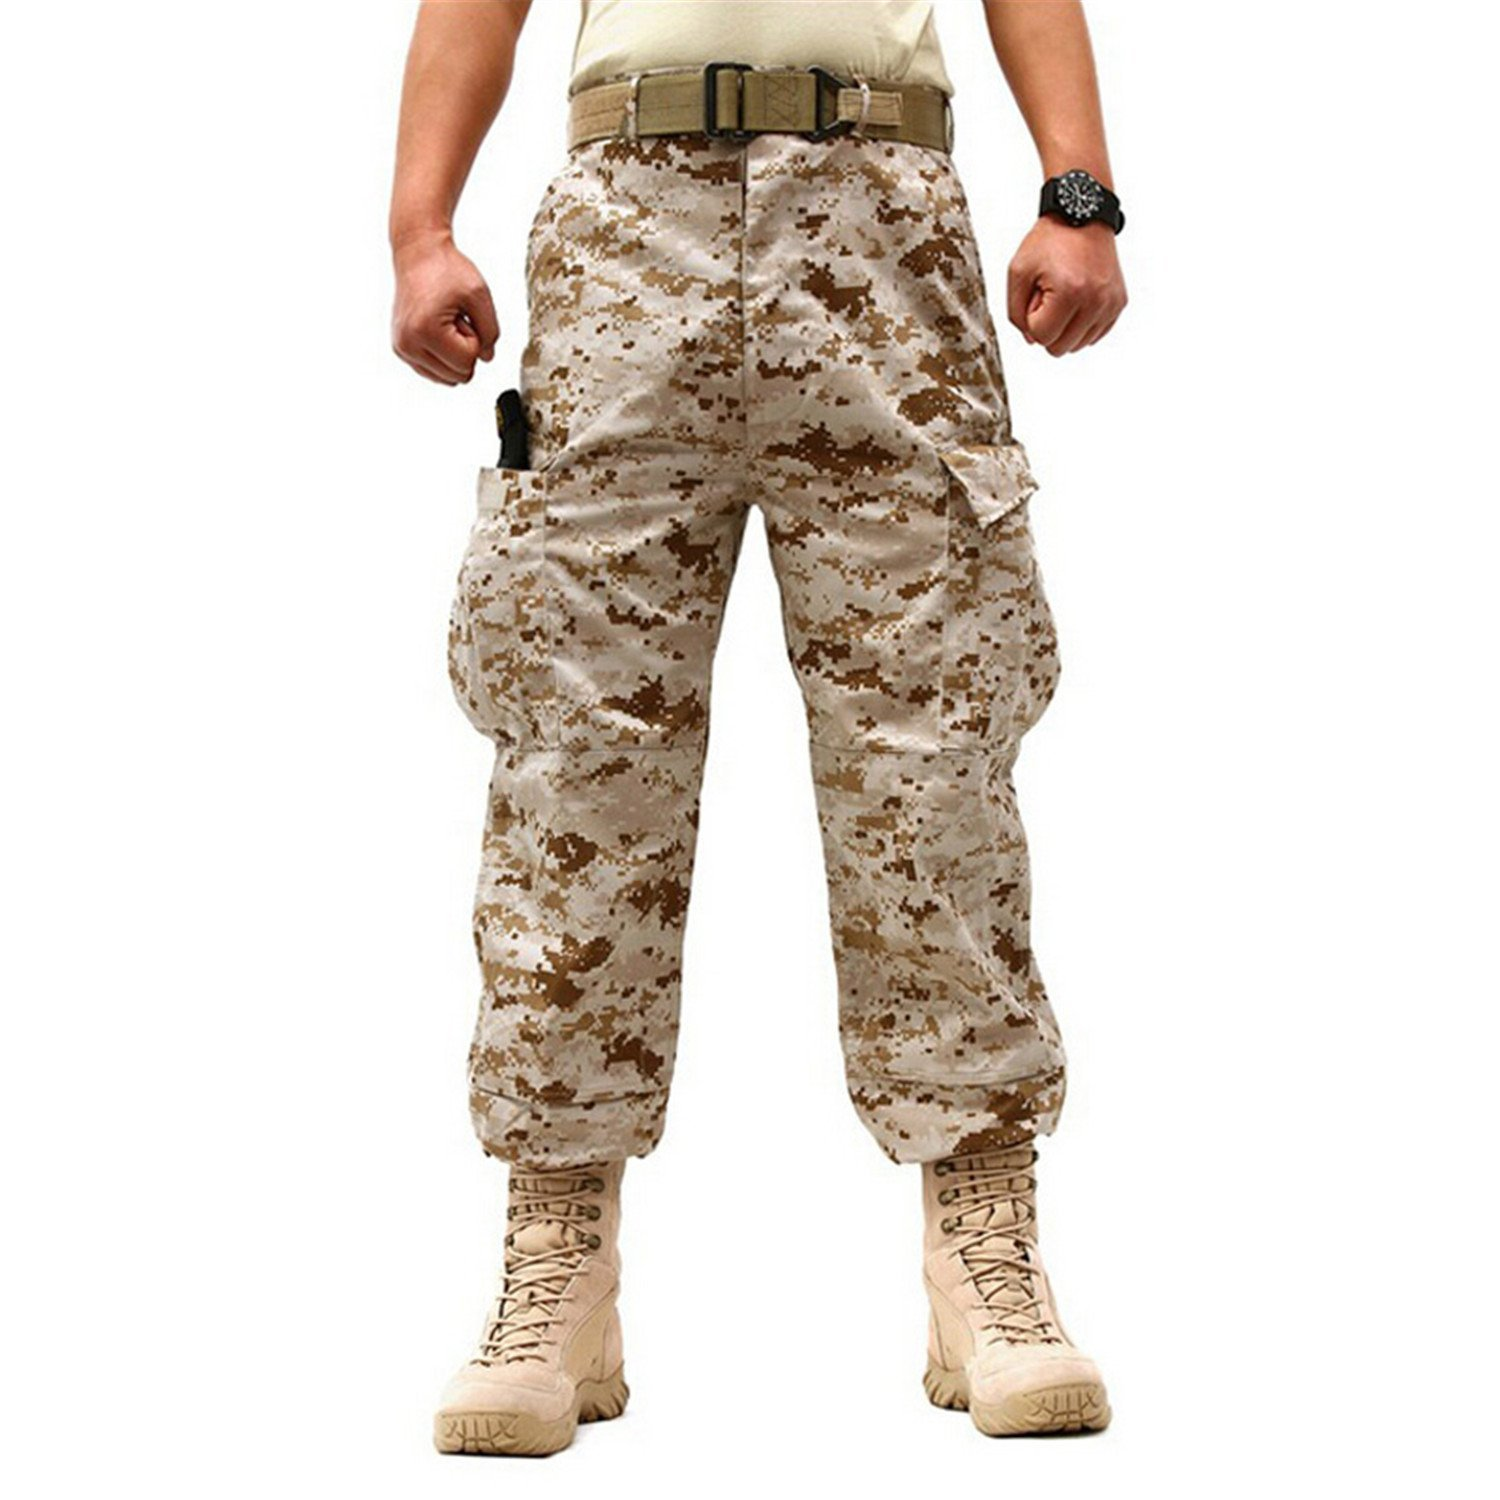 TOPING Fine Men Clothing Camouflage Cargo Trouser Male Casual Man Pantalon Homme Military Pants Desert CamouflageLarge